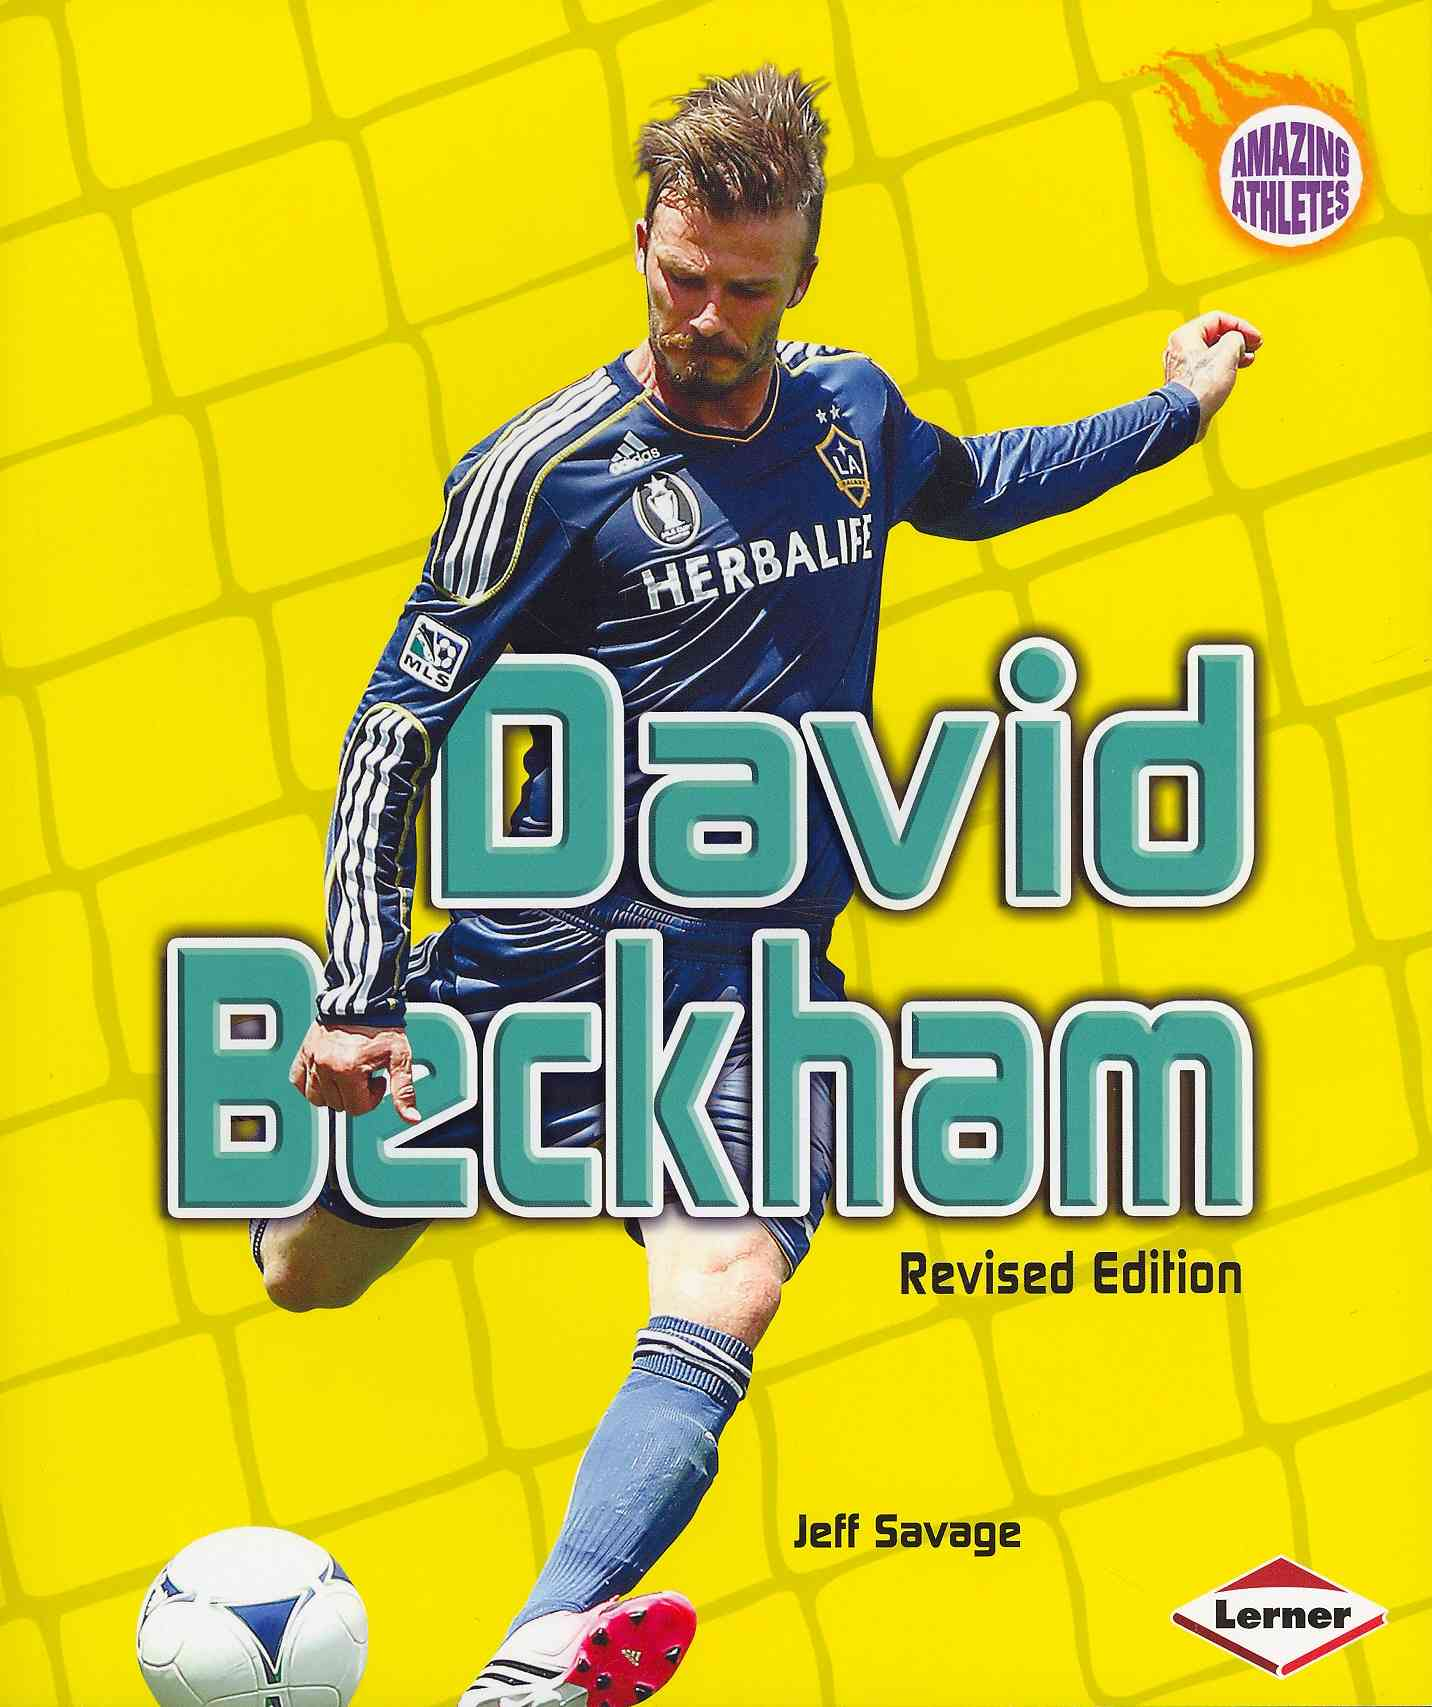 David Beckham By Savage, Jeff